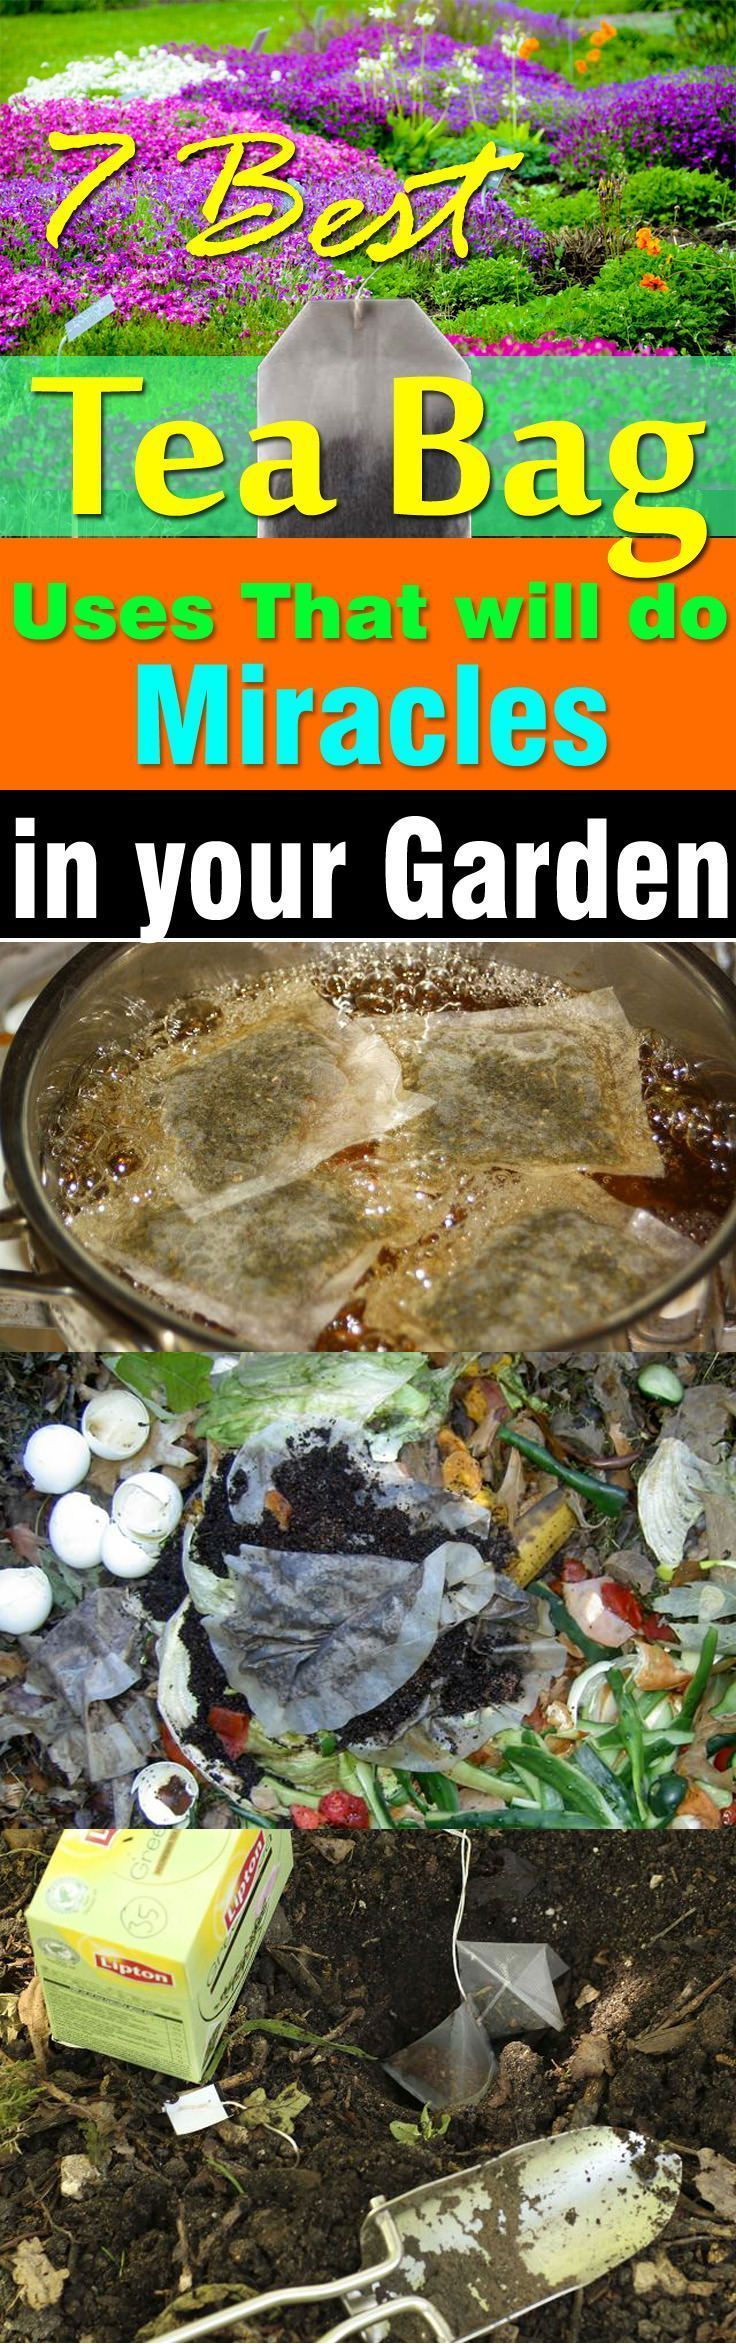 Before you toss another tea bag, must check out this post! Tea bags are not just